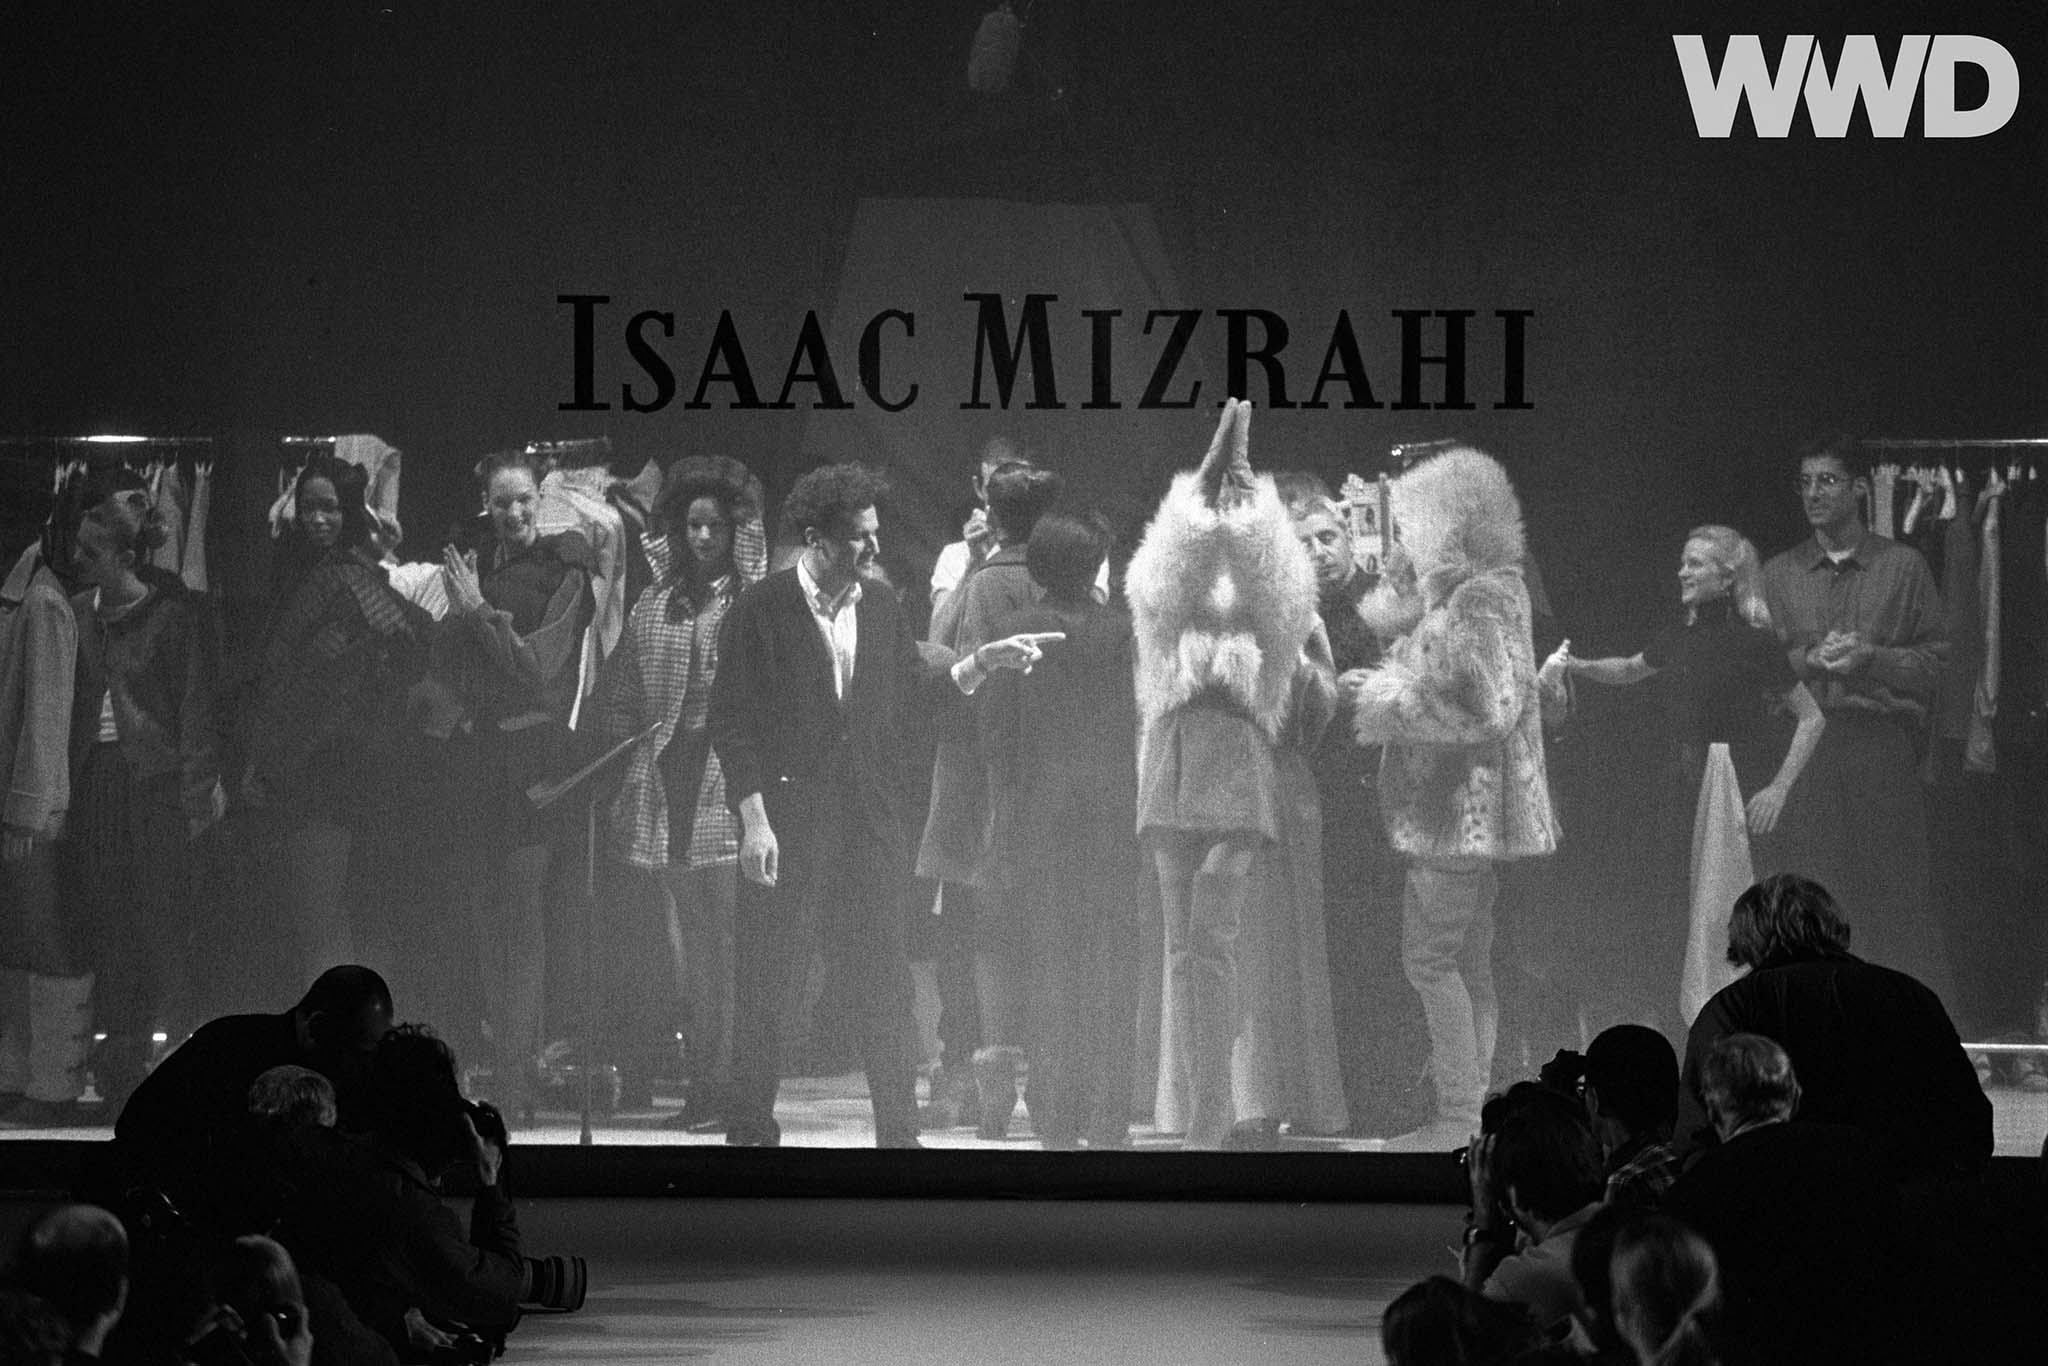 "Isaac Mizrahi on stage during his fall 1994 ready-to-wear collection, later featured in the 1995 Douglas Keeve directed documentary ""Unzipped"""